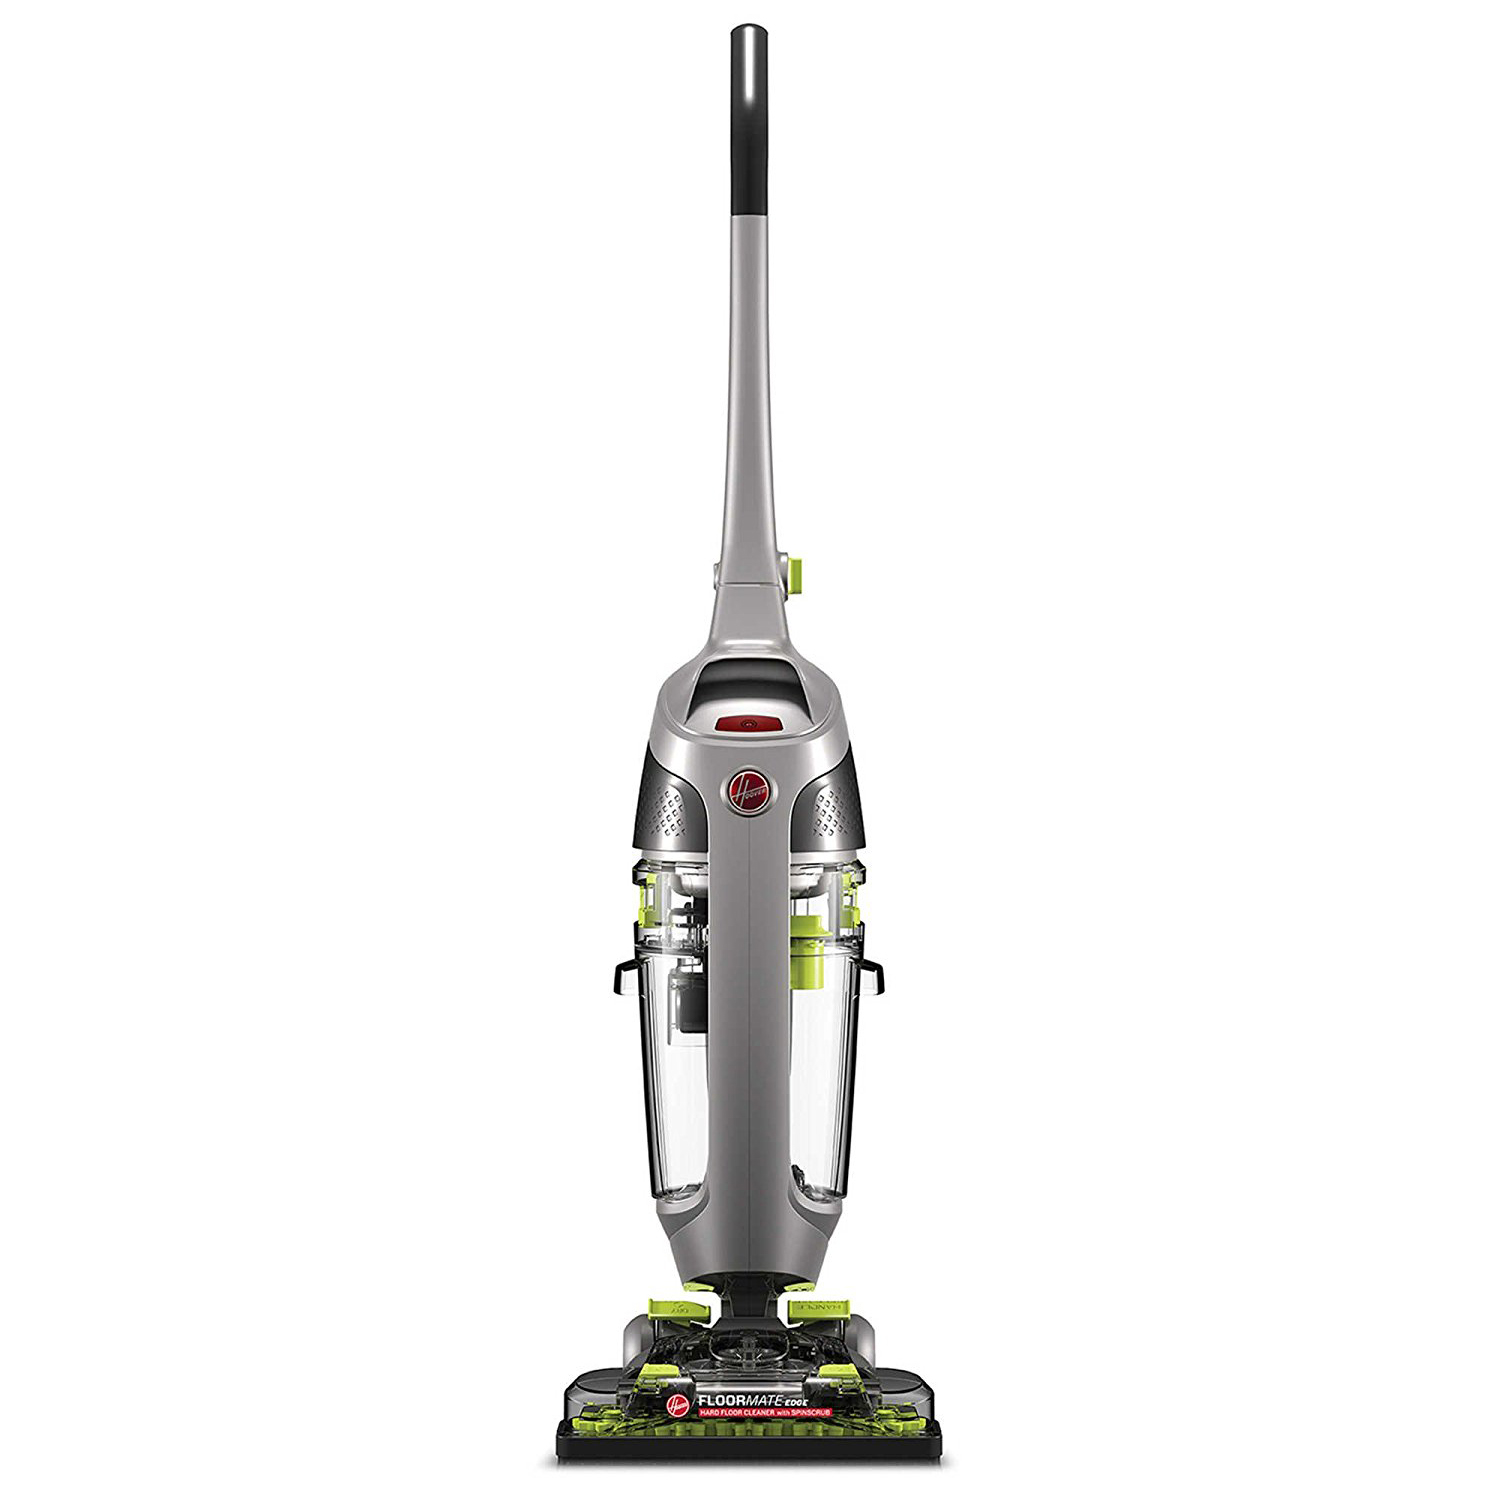 cleaners for d page read floormate manual owner hoover img s cordless floors floor hard cleaner online